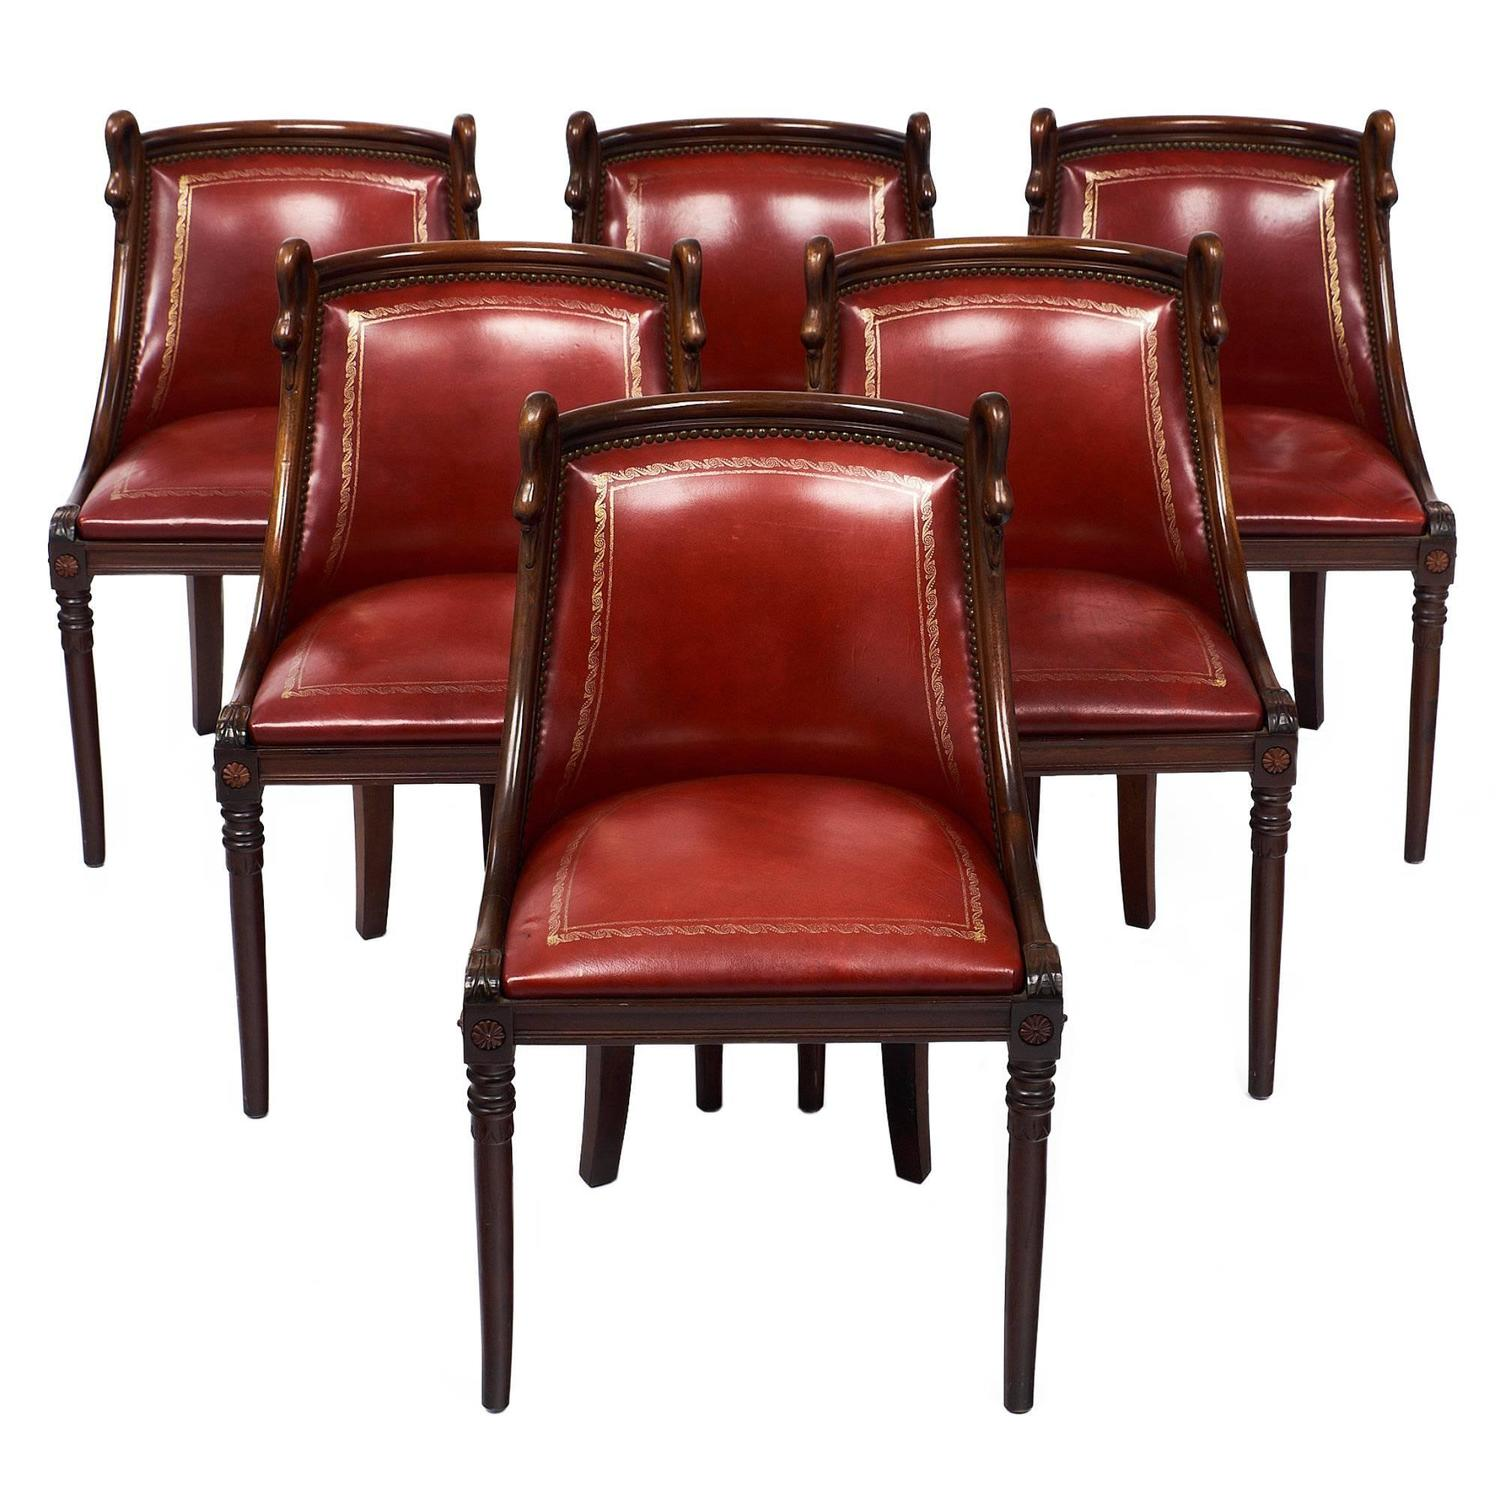 Set of Empire Style French Barrel Swan Chairs at 1stdibs